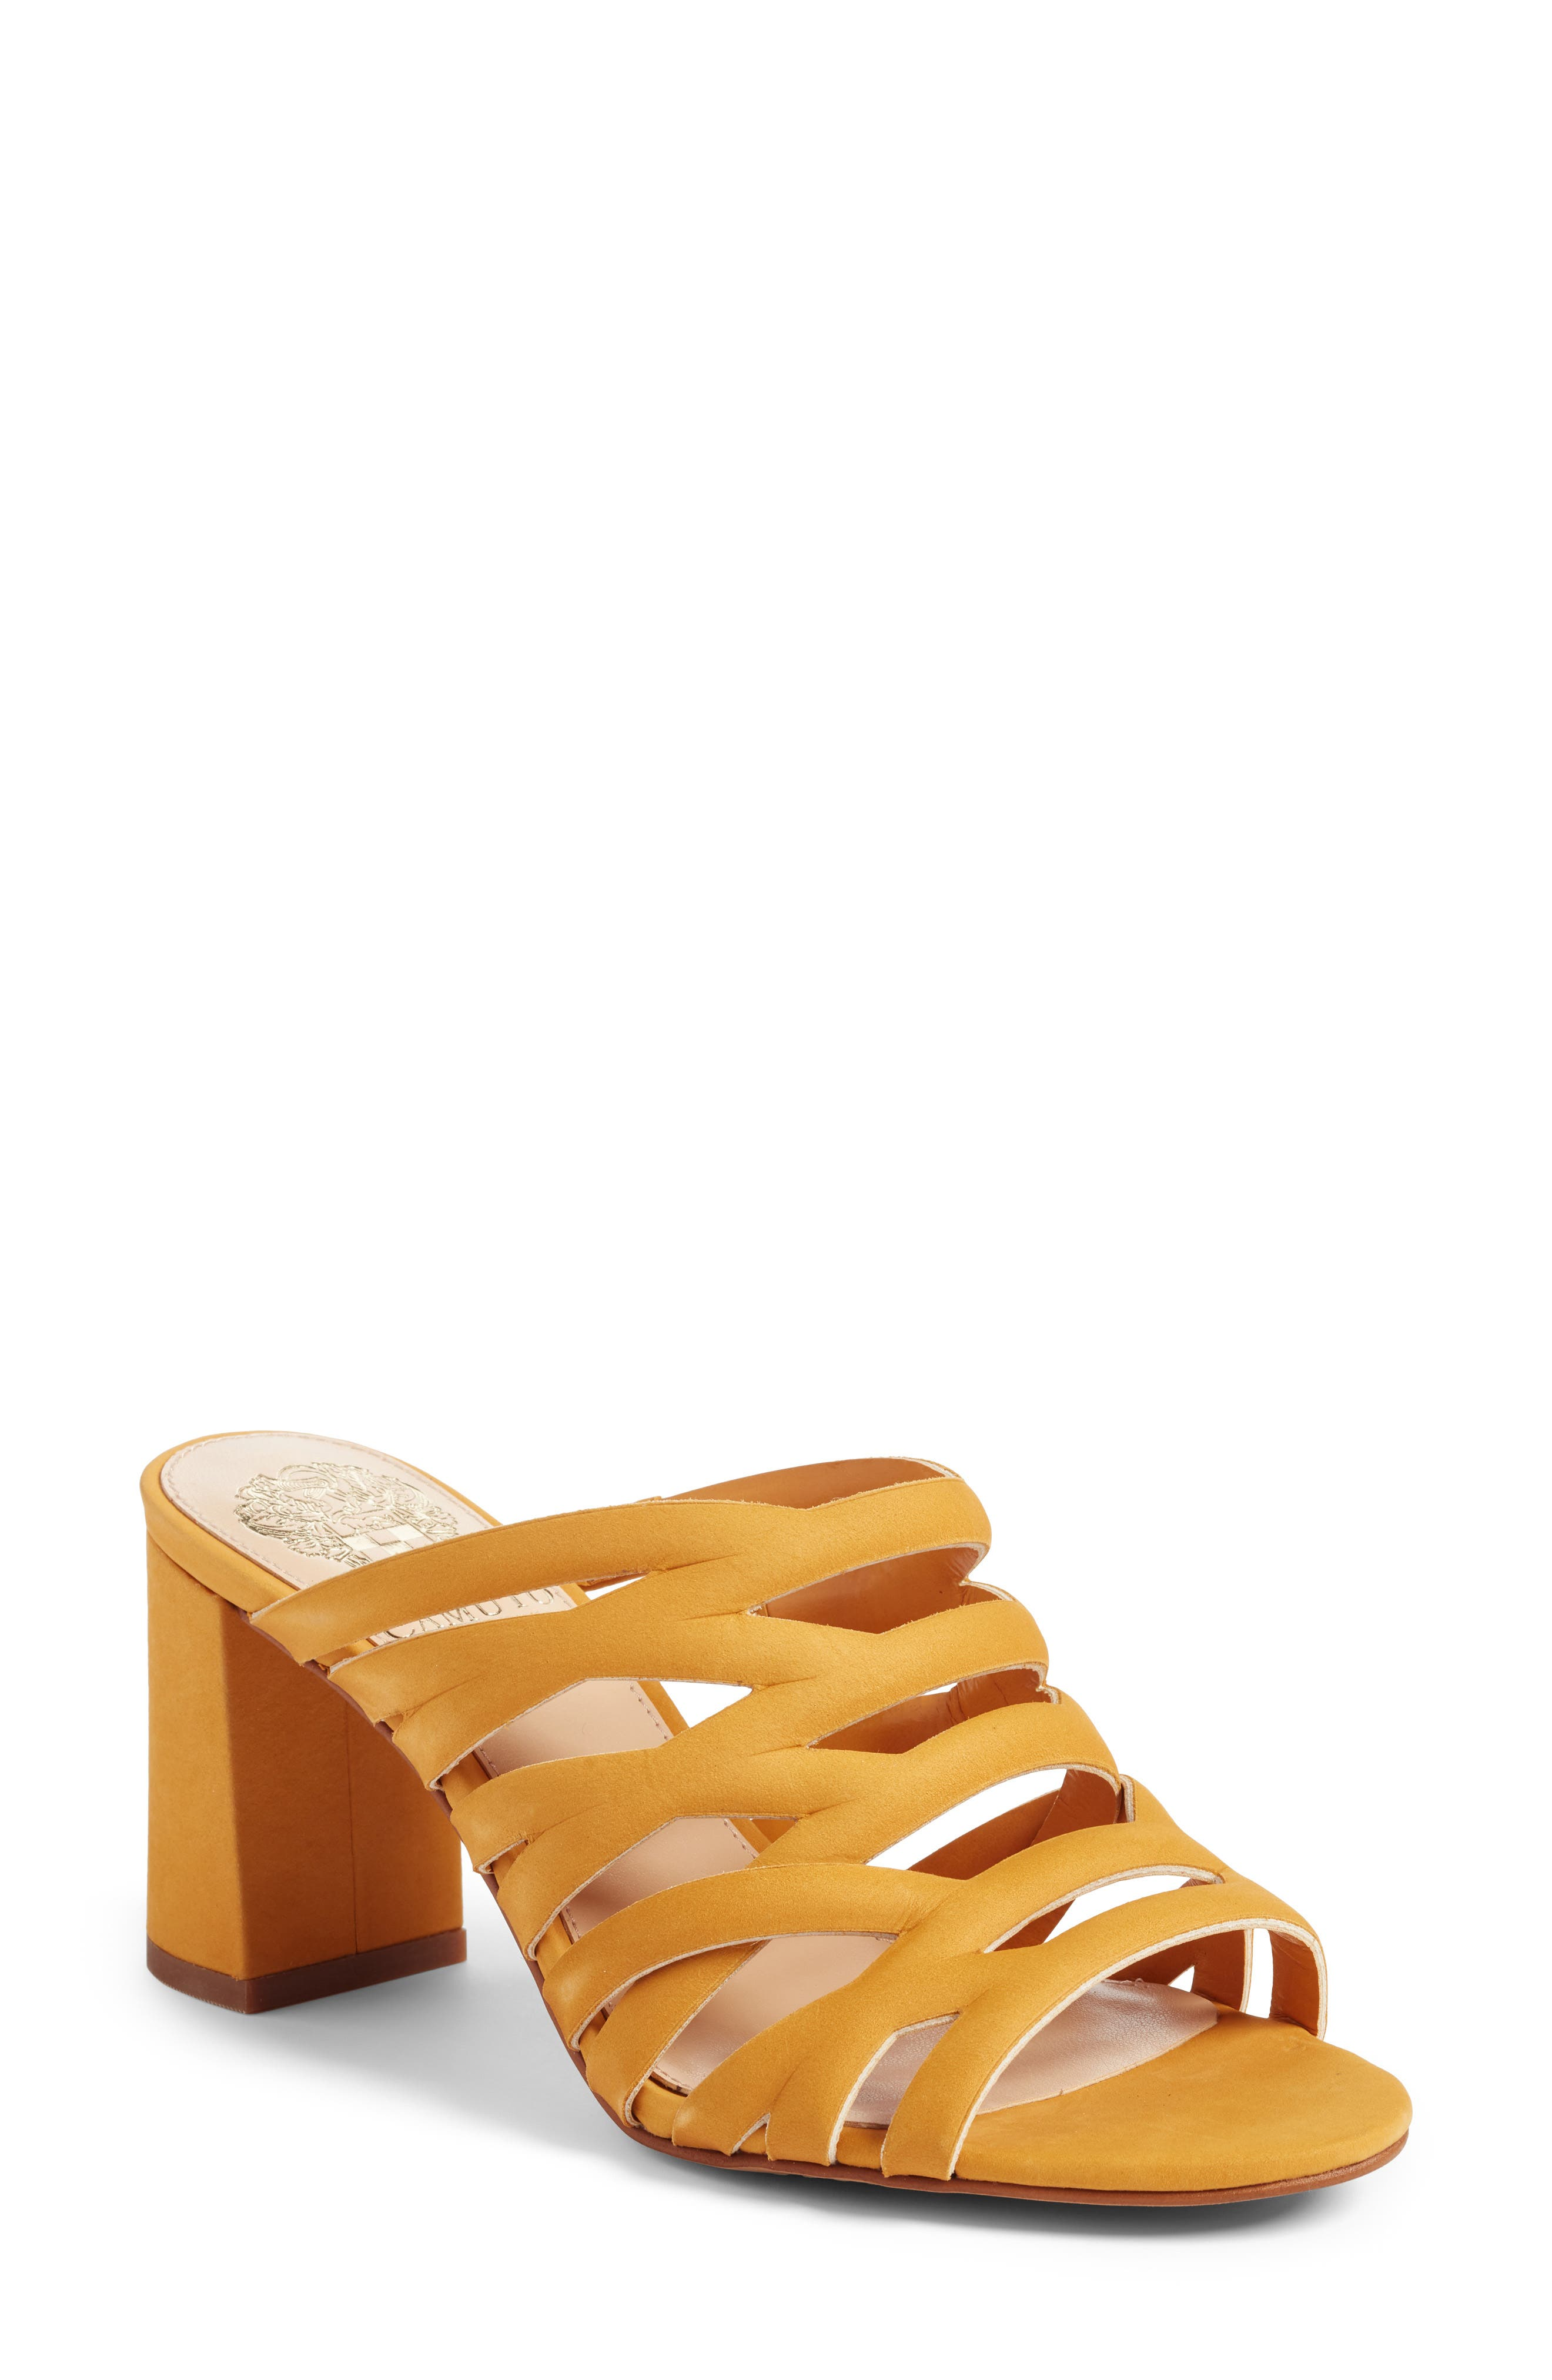 Raveana Cage Mule,                         Main,                         color, MUSTARD YELLOW LEATHER